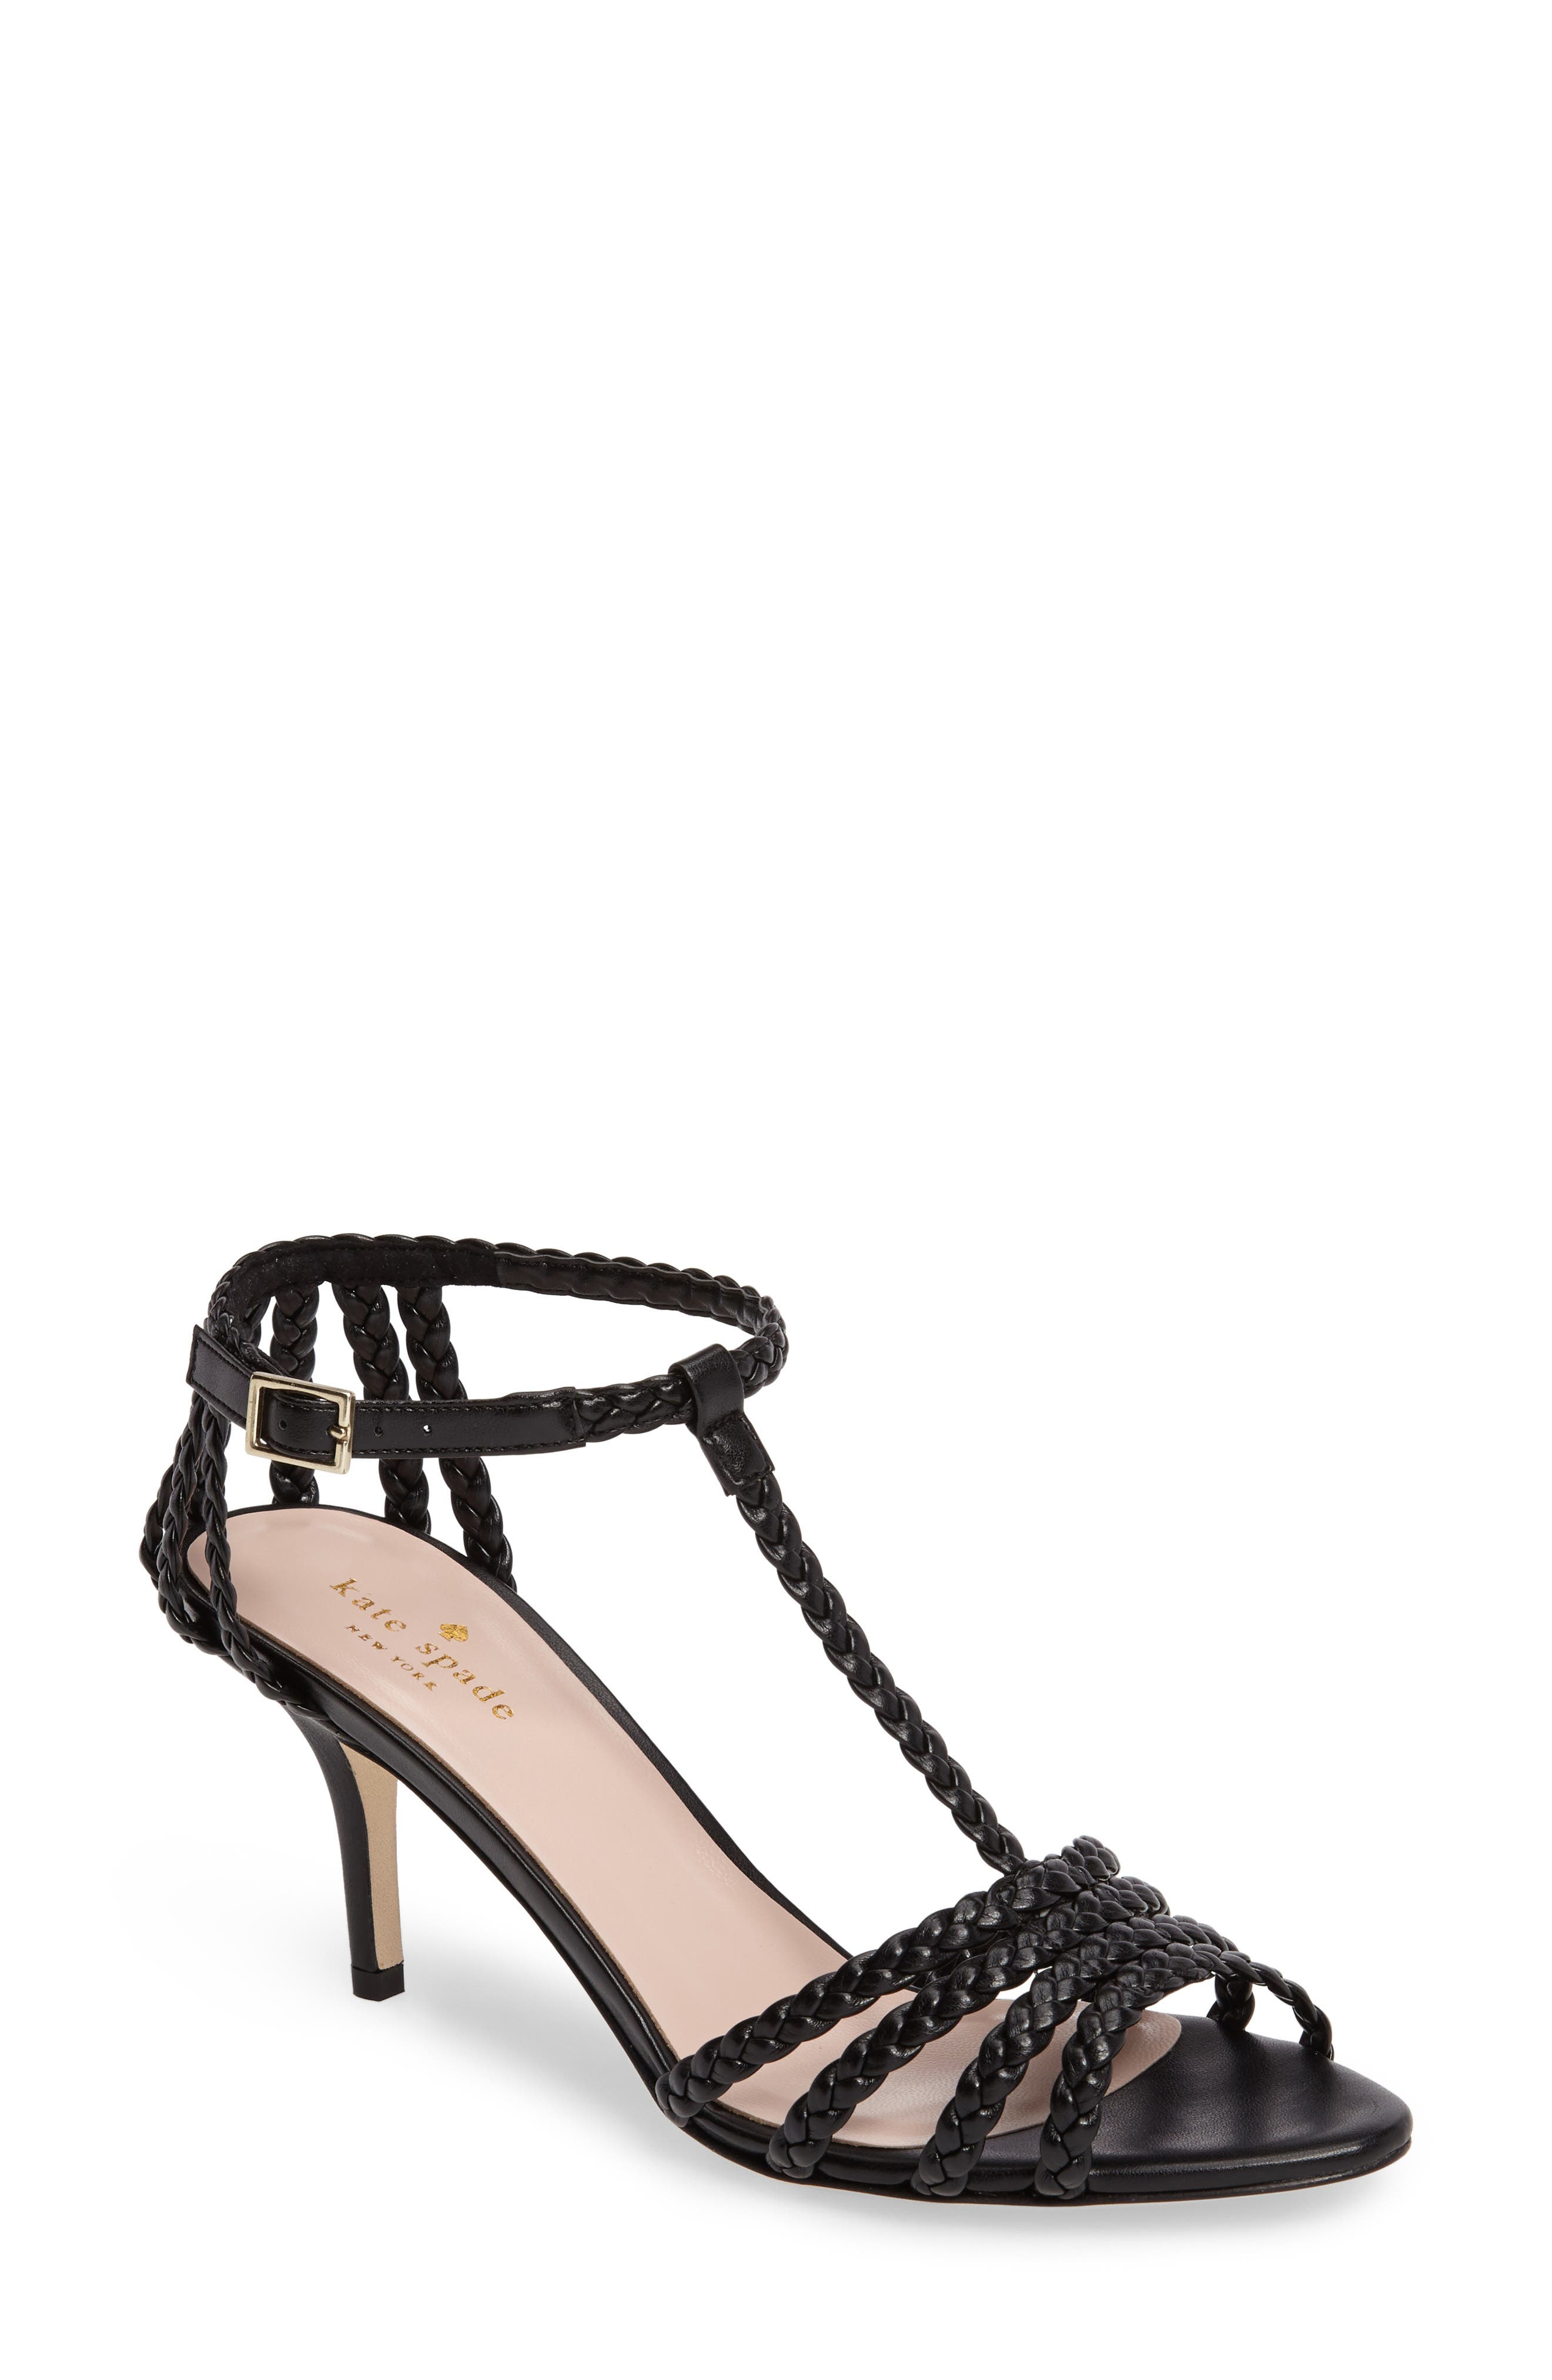 Alternate Image 1 Selected - kate spade new york sullivan strappy sandal (Women)